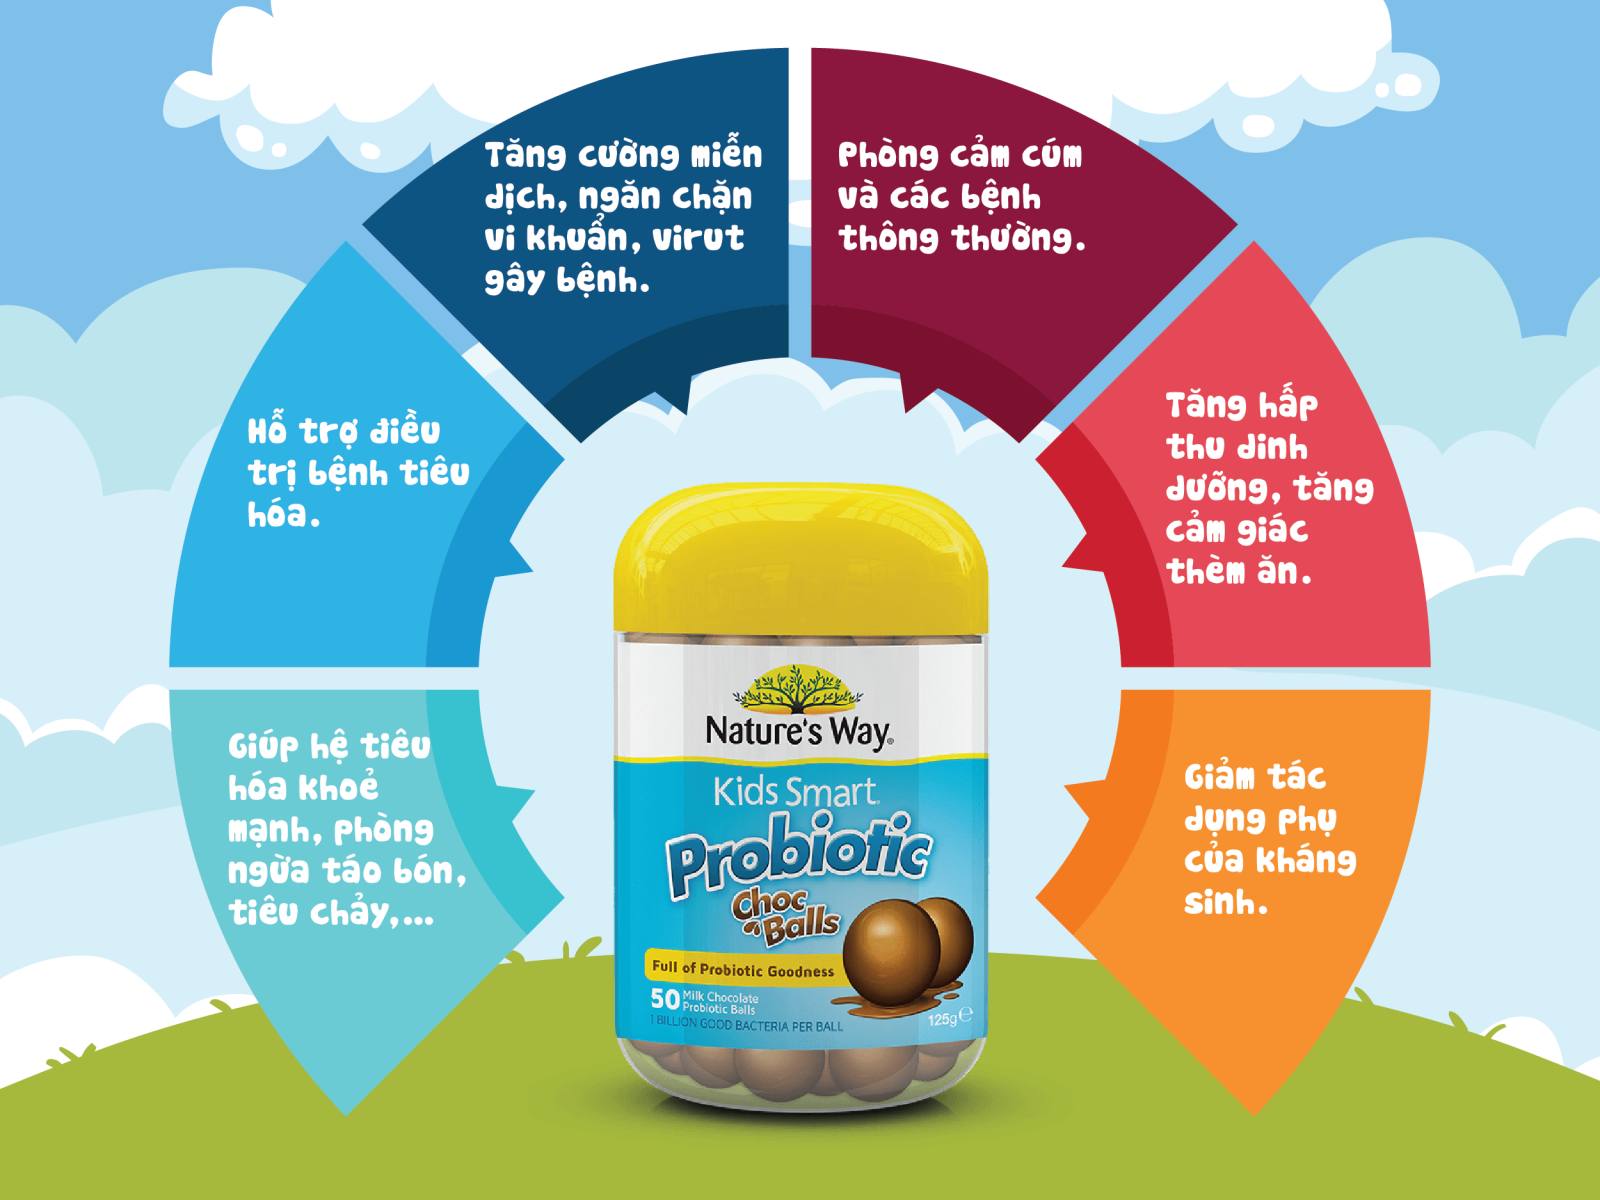 Kẹo lợi khuẩn Nature's Way Kids Smart Probiotic Chocballs